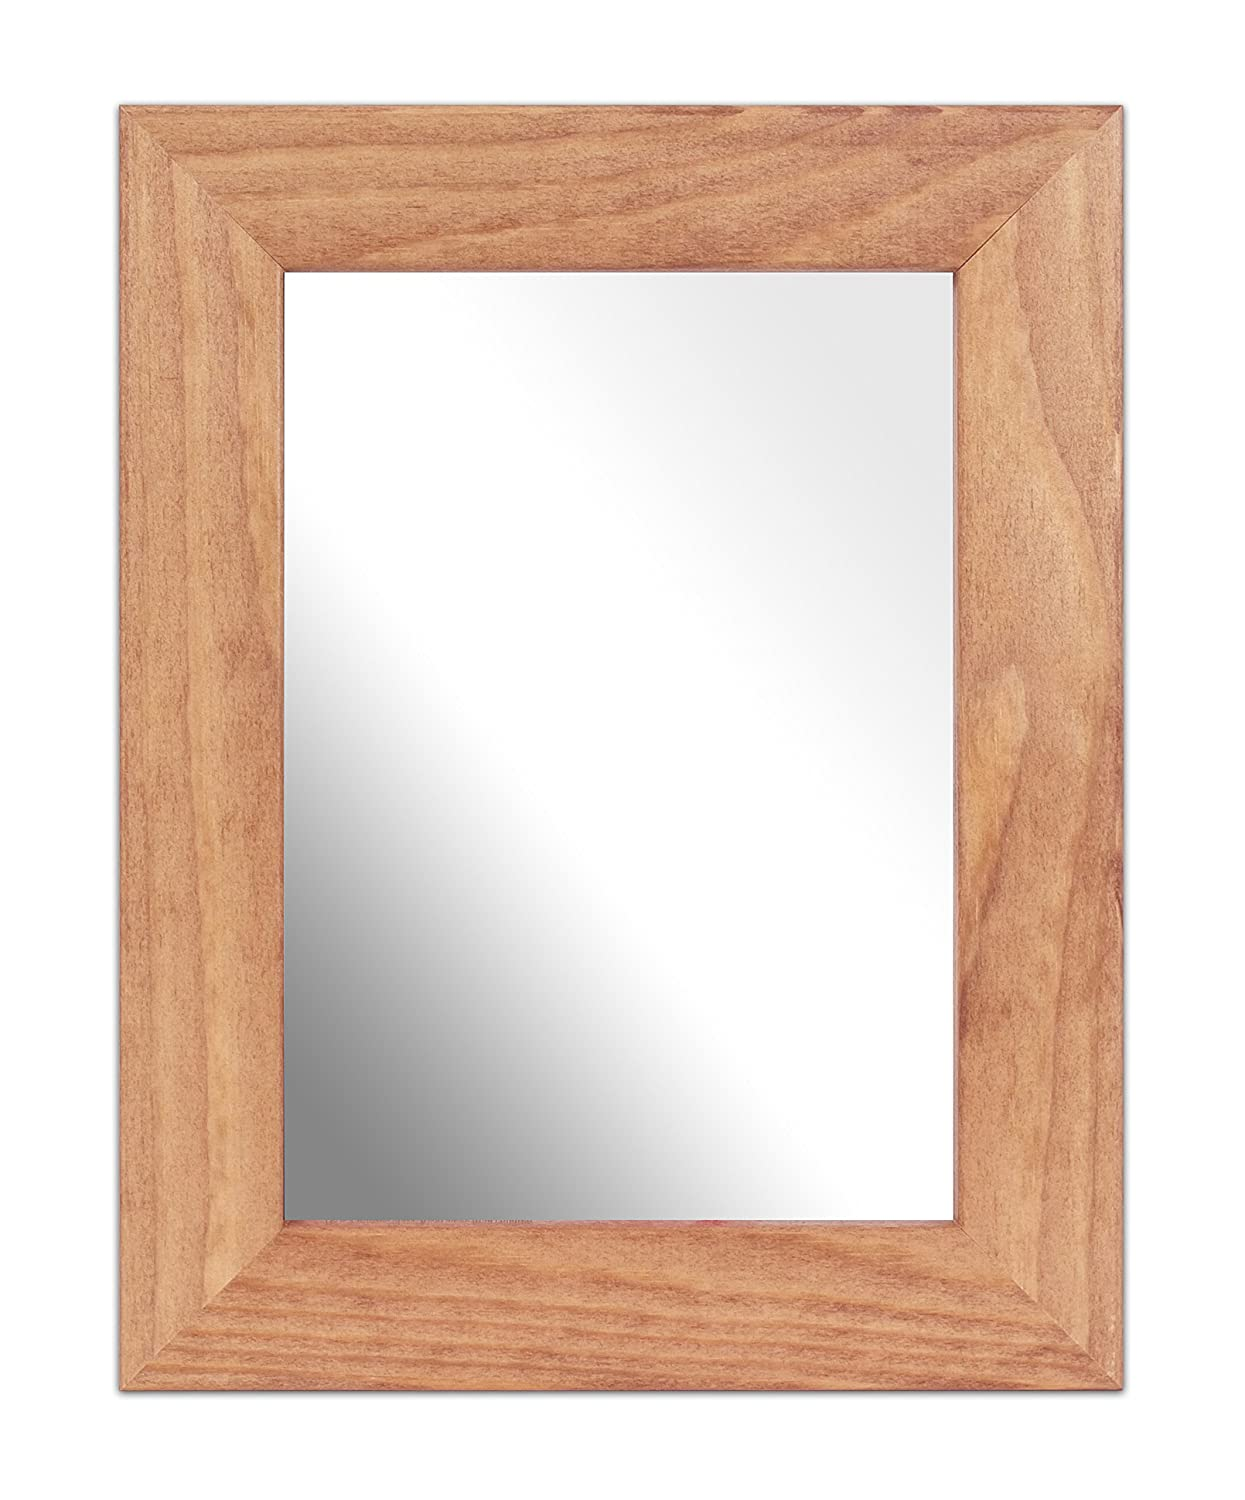 Inov8 British Made A4 Traditional Real Wood Mirror, Kayla Light Oak MFWS-KALO-A4